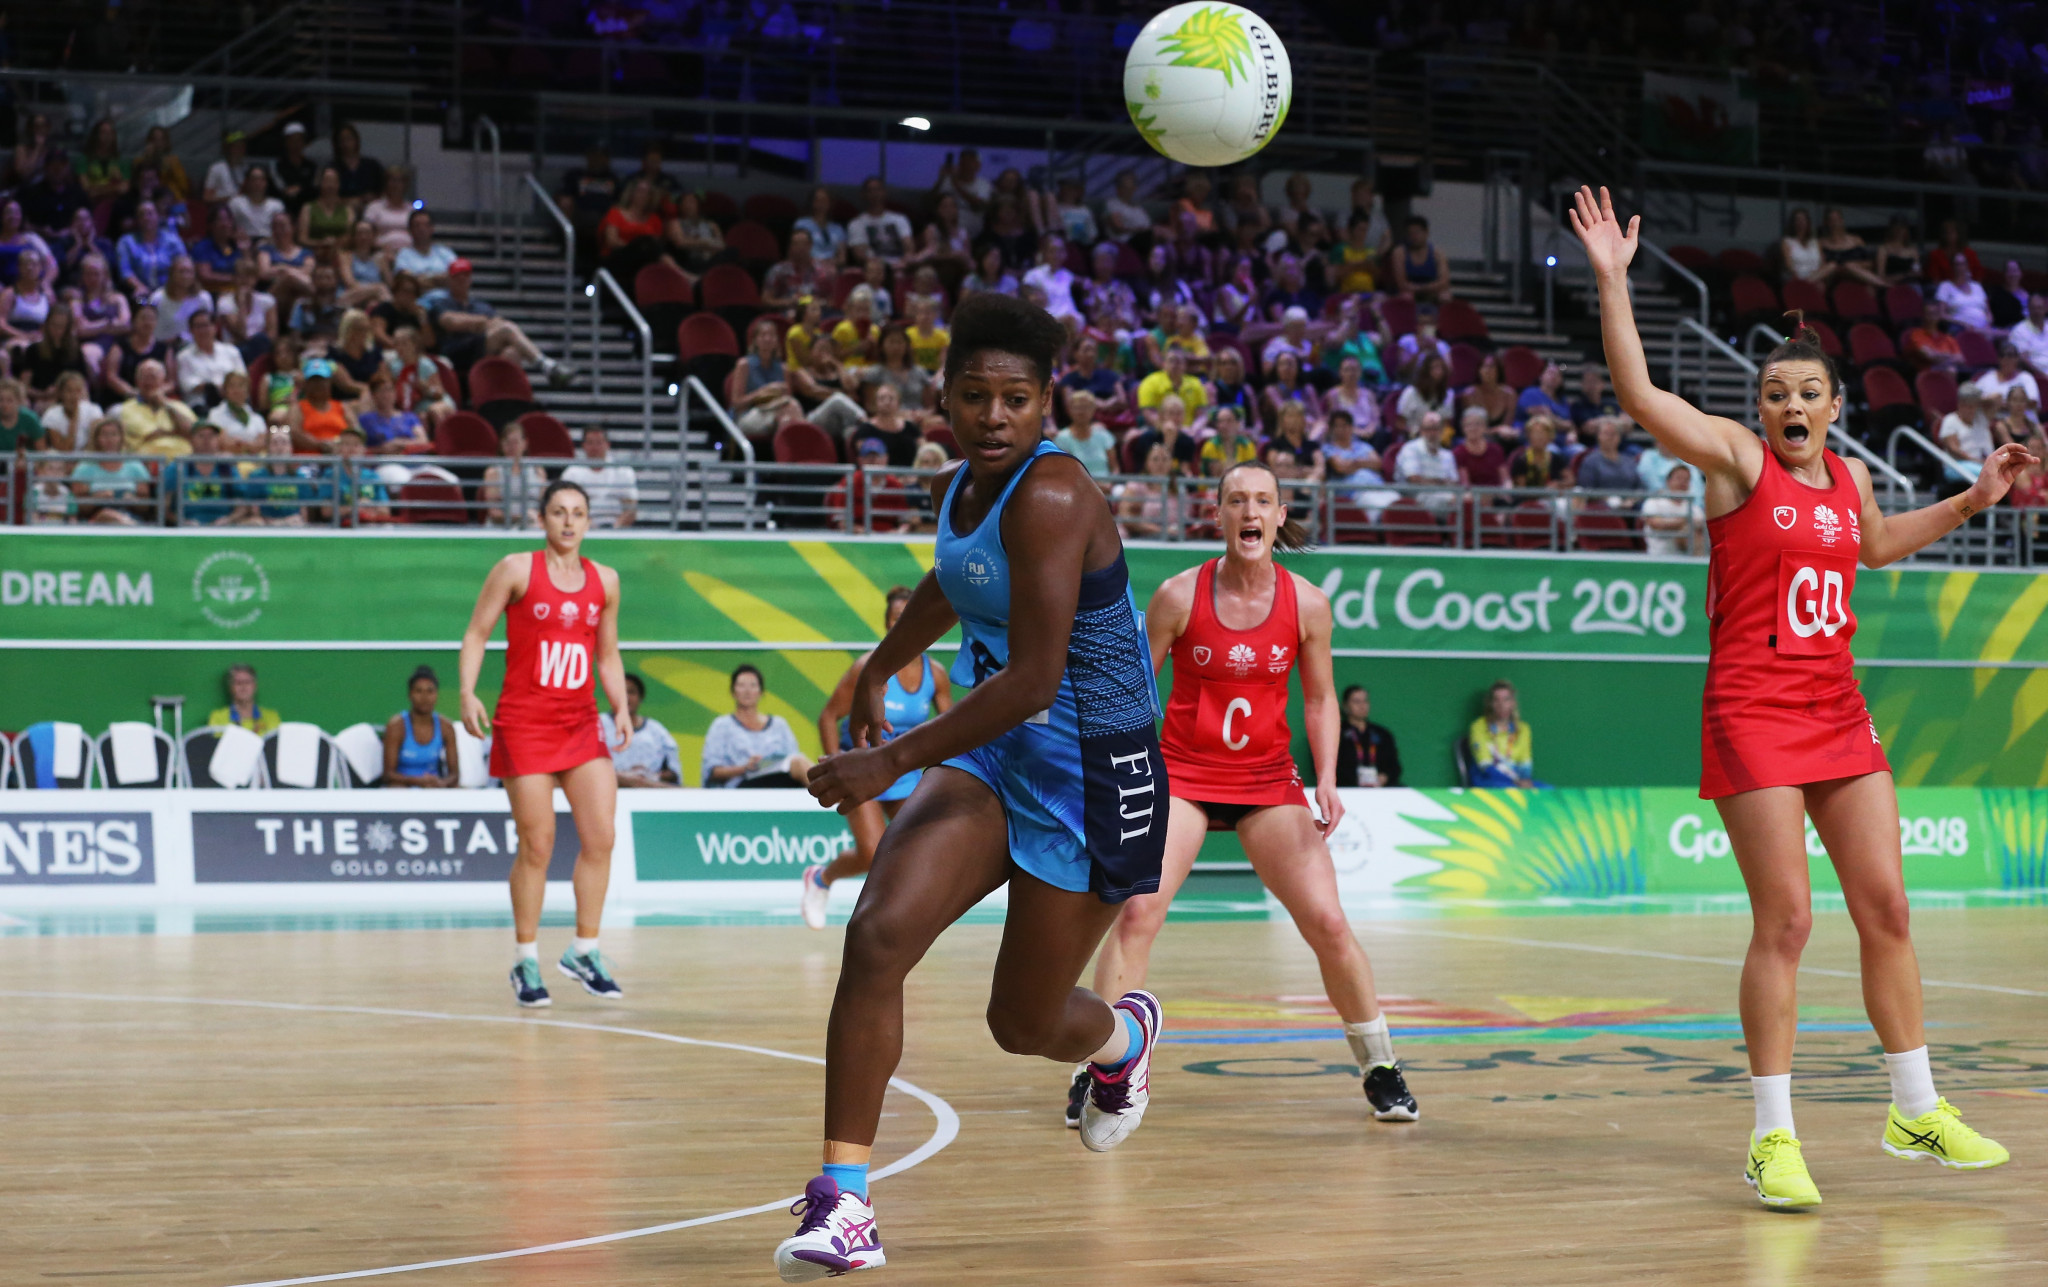 Netball Australia to provide high-performance support to Pacific netball teams